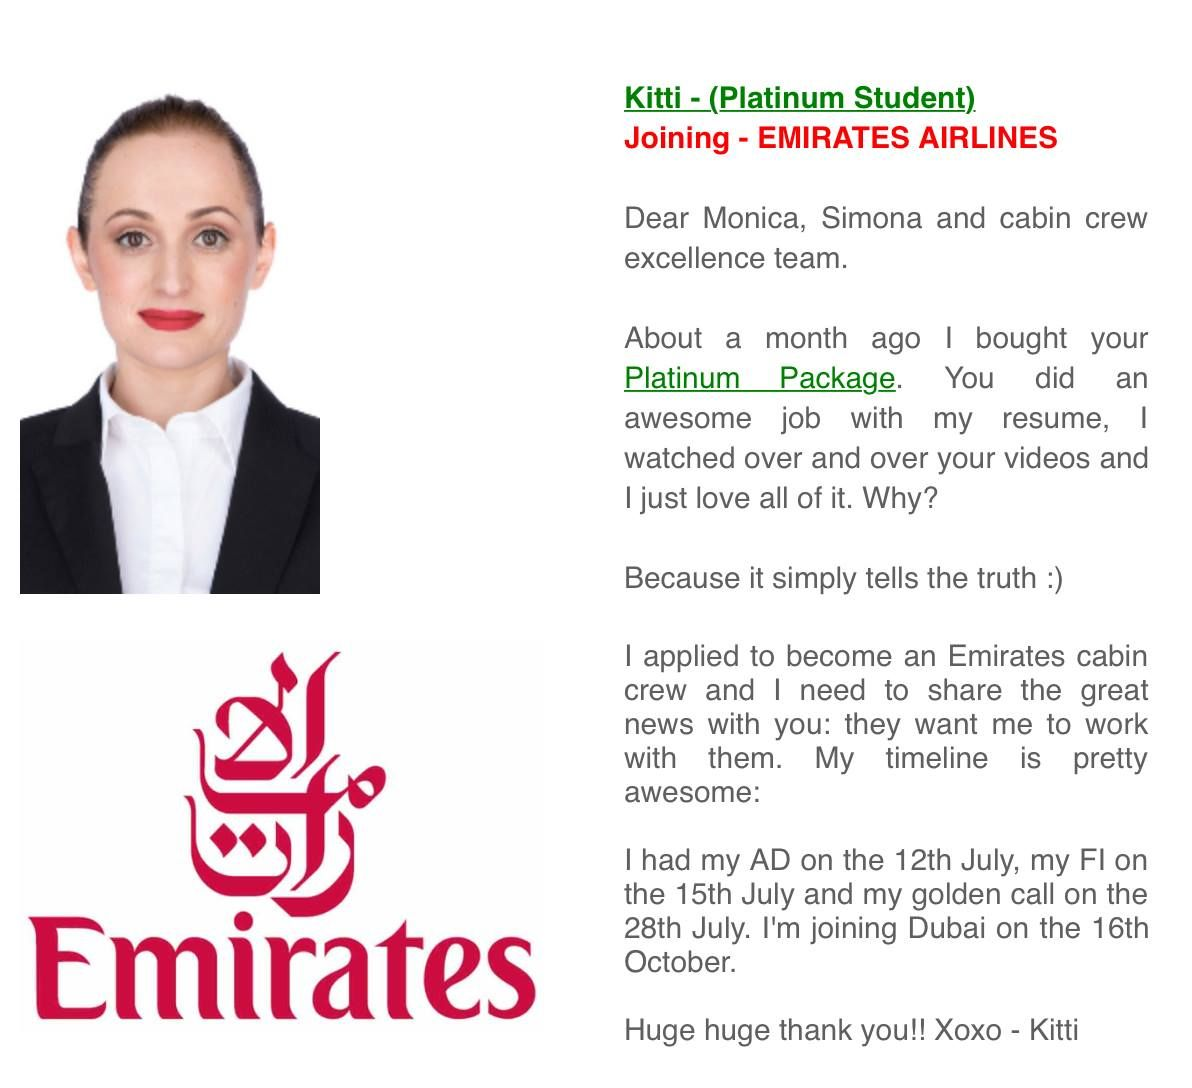 Kitti Is One Of Our Platinum Students And Now A Future Emirates